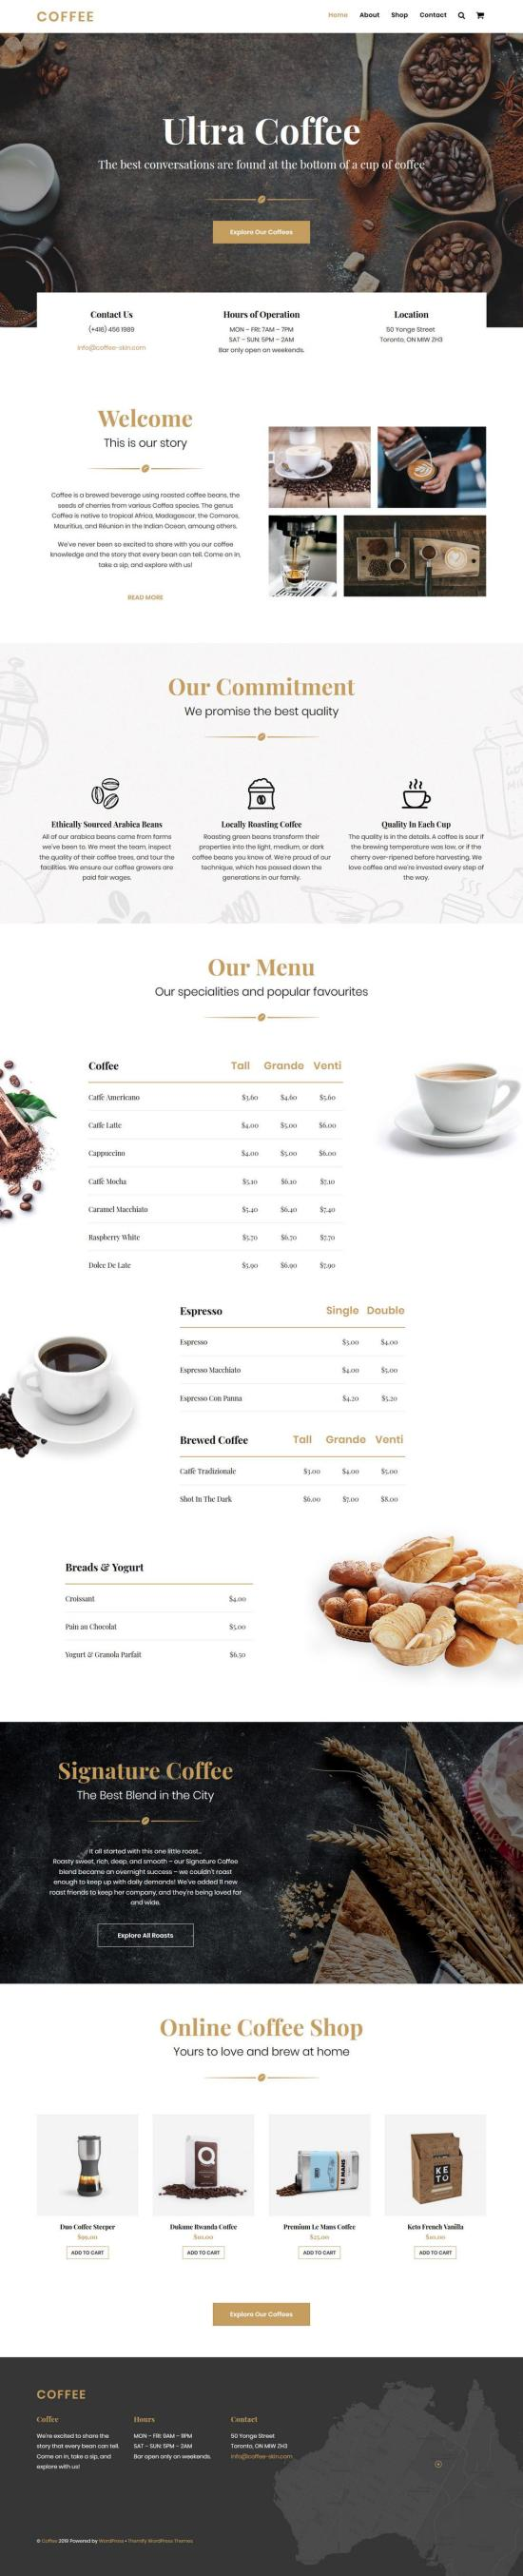 Ultra Coffee WordPress Theme Demo